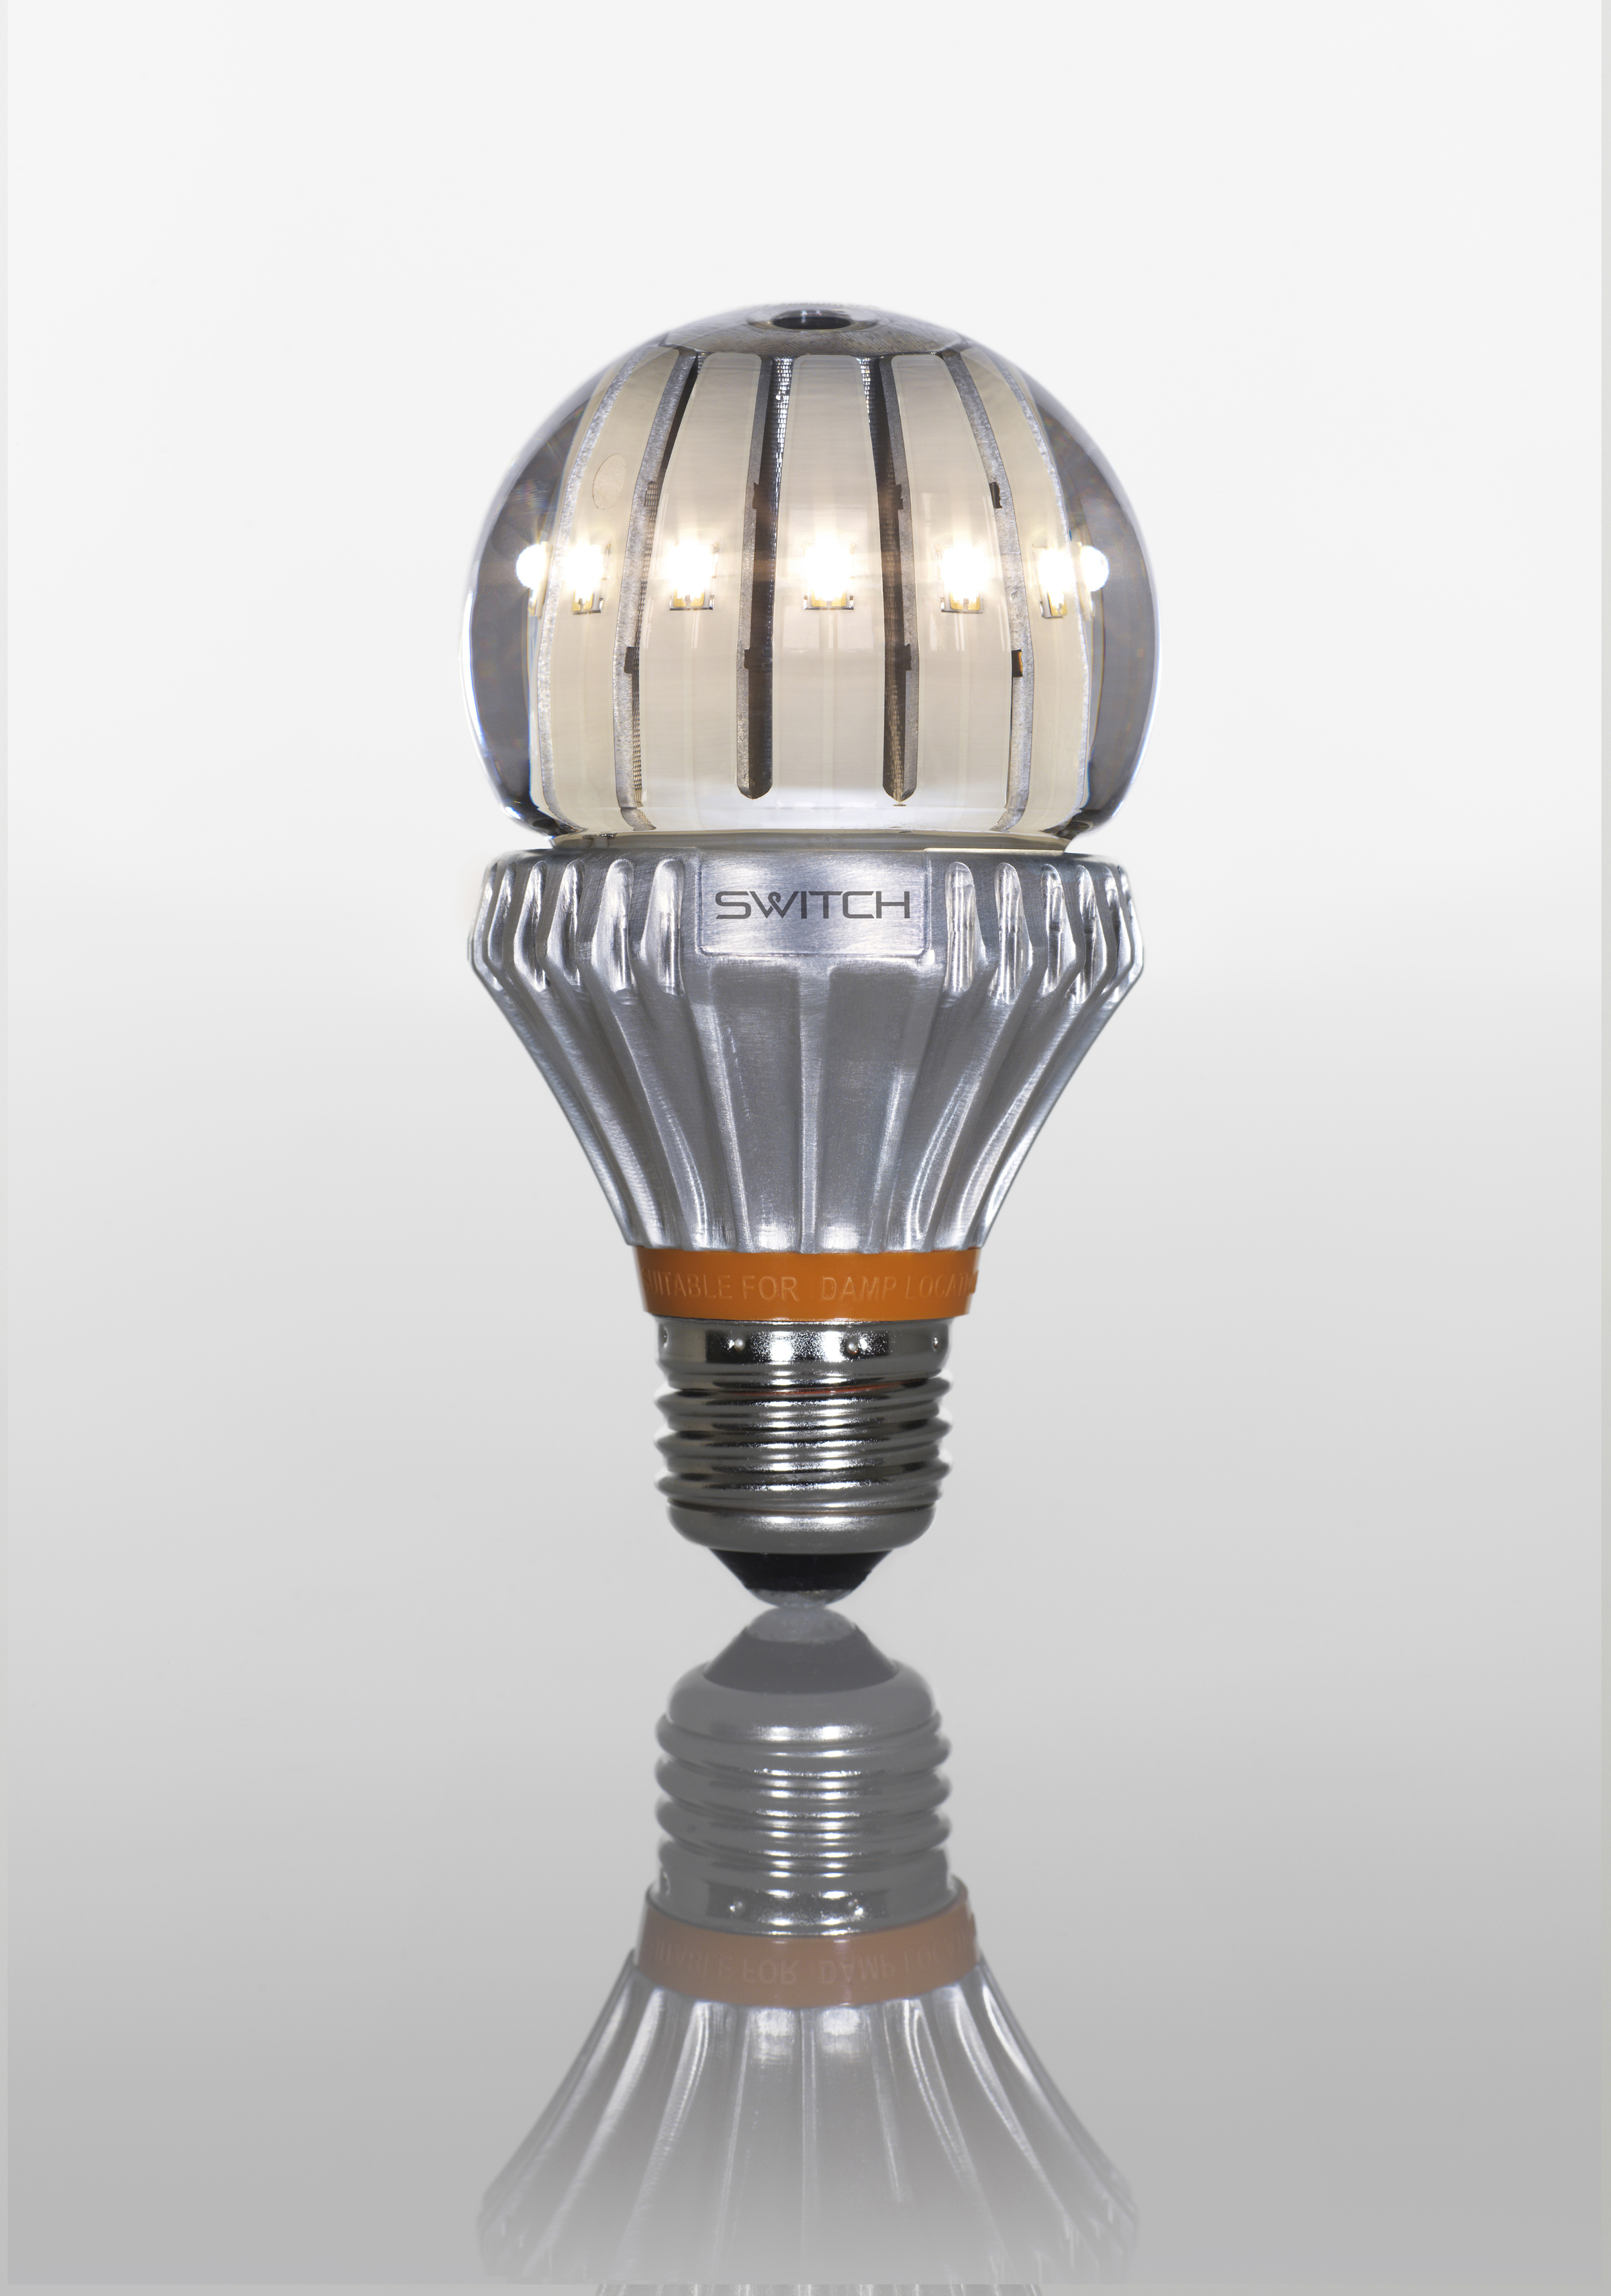 Transferring efficiency confusion into sales of efficient light bulbs Efficient light bulbs